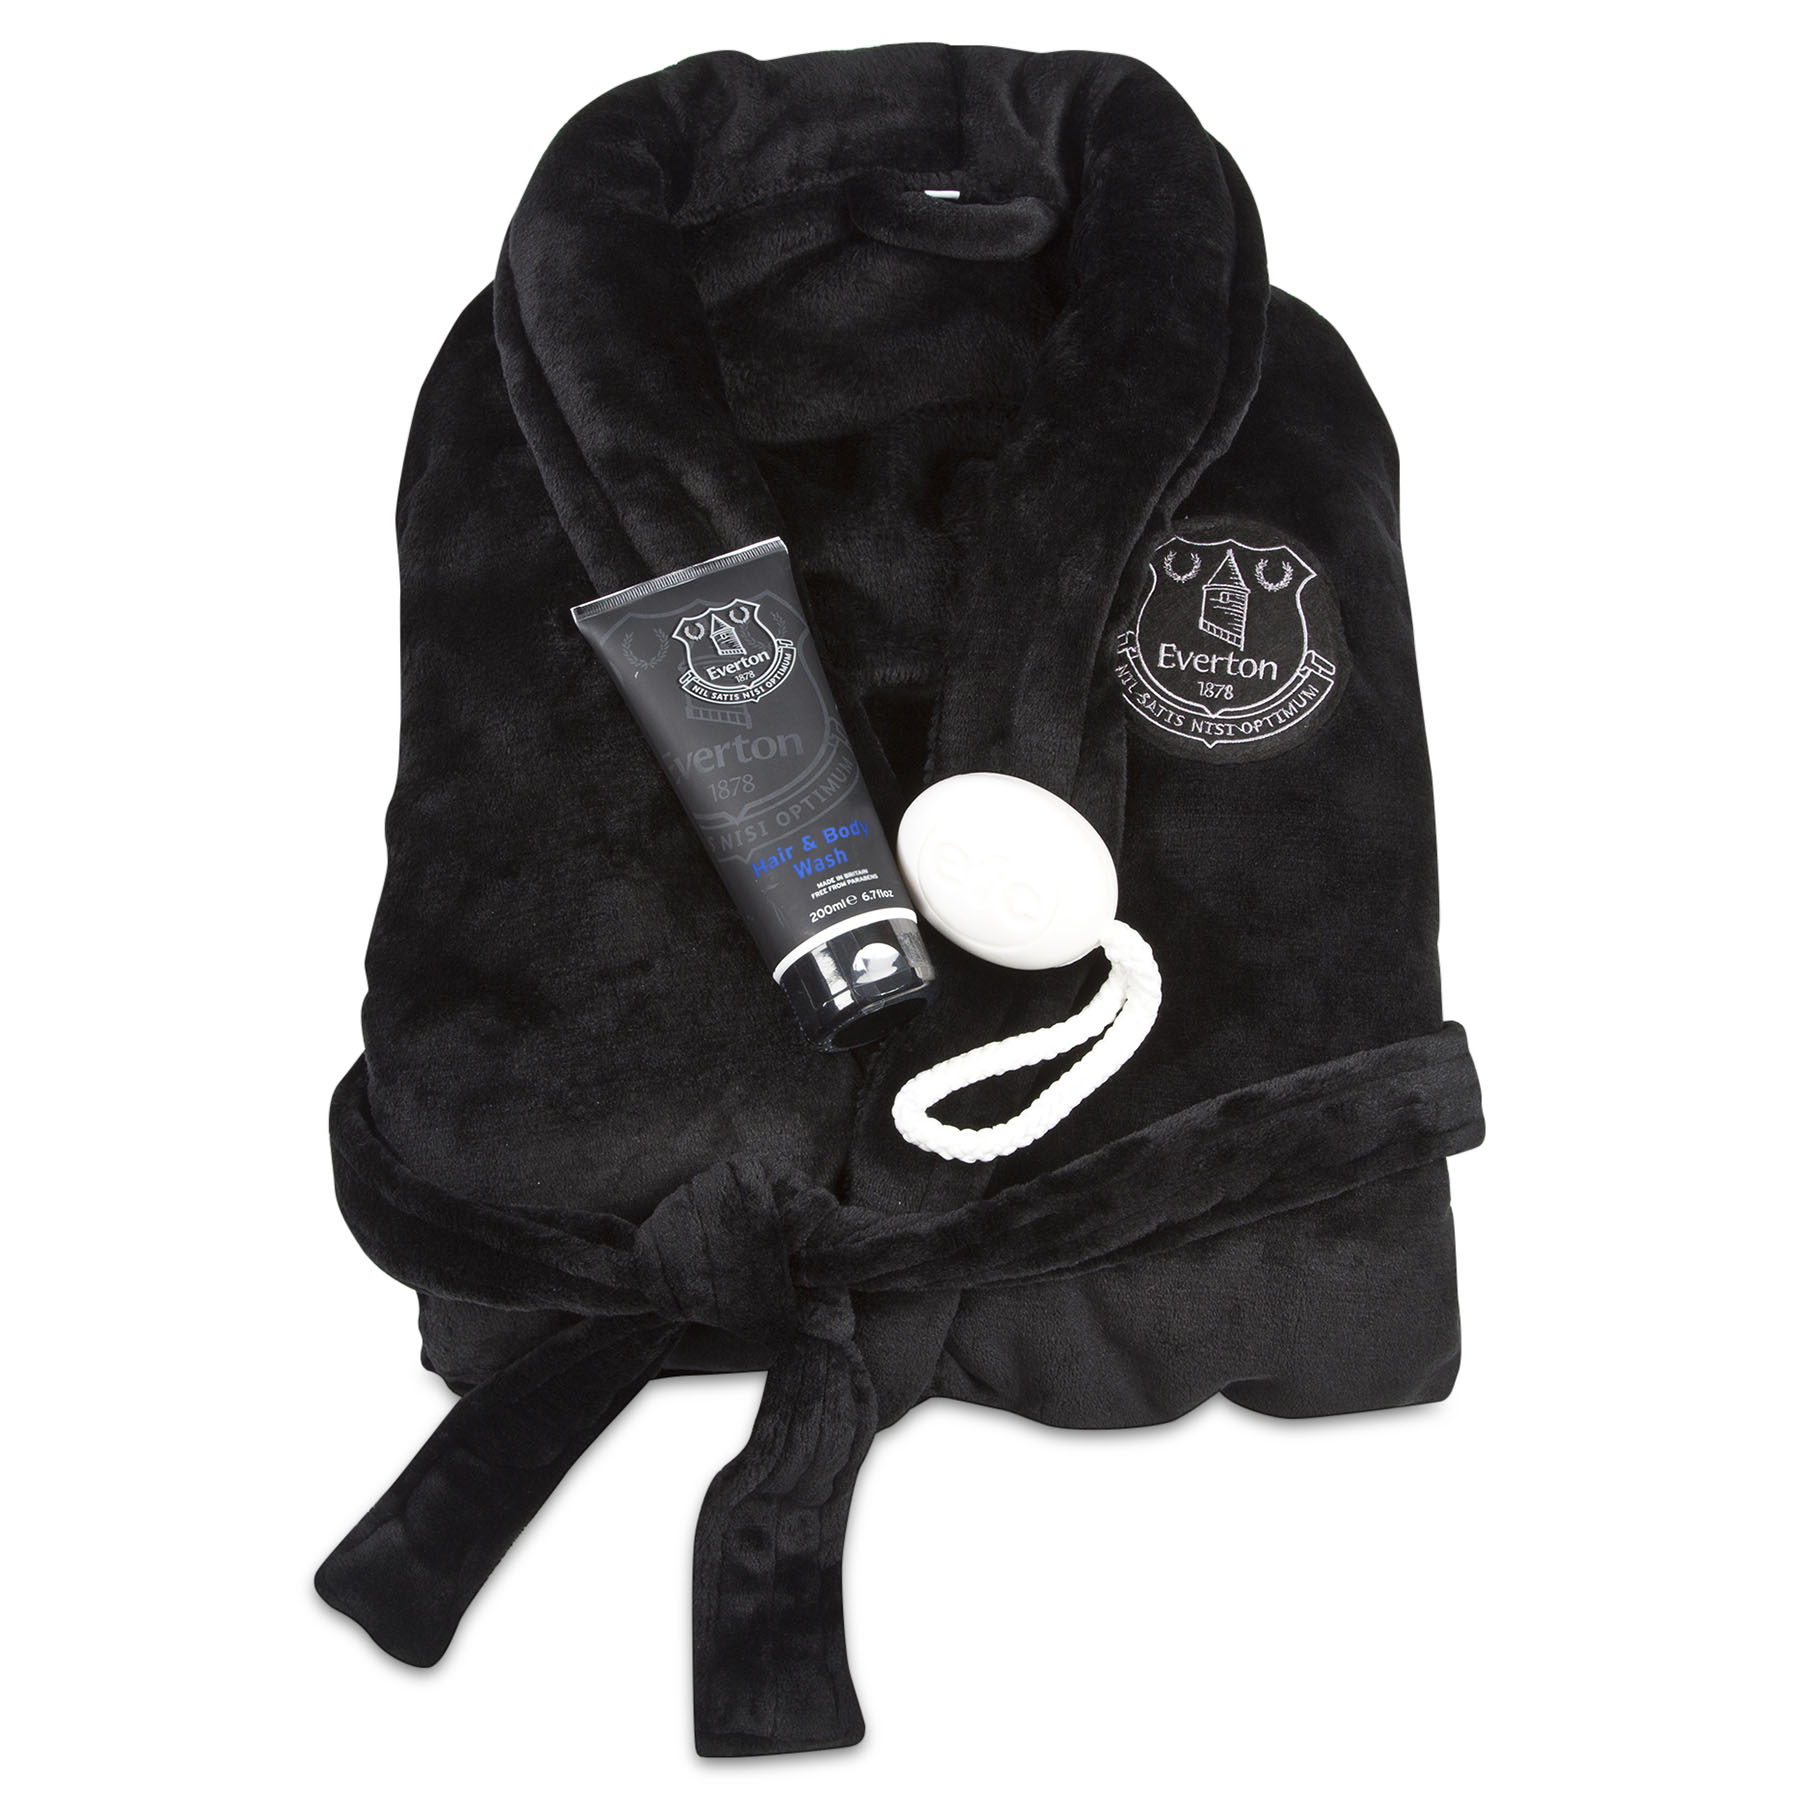 Everton Luxury Bathrobe Set